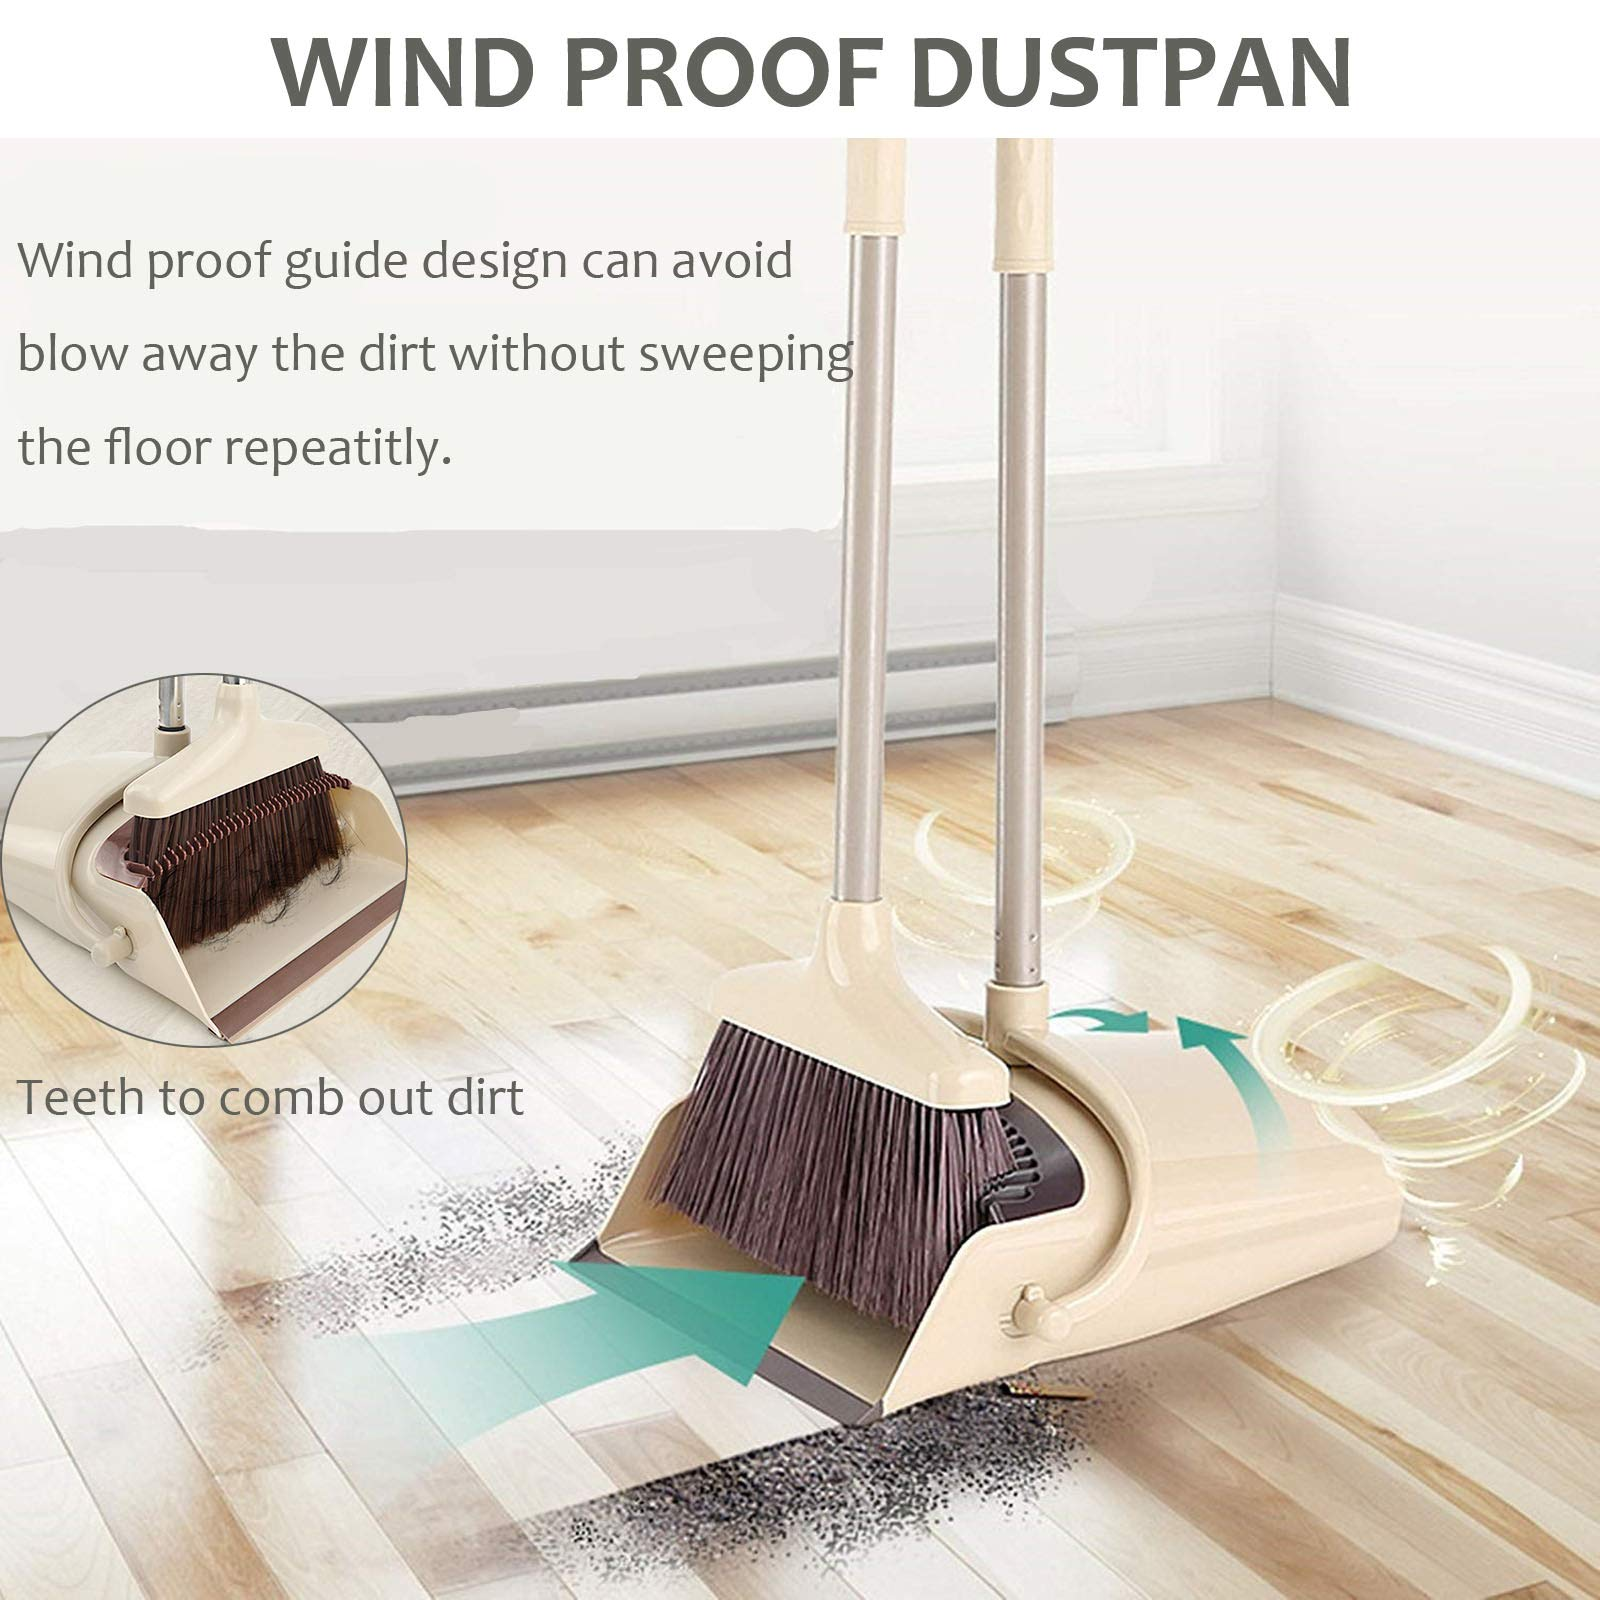 Broom and Dustpan Set, 48 inch Extendable Broom Standing Upright - Wind Proof - Foldable Sweep Set with Soft Bristles & Rubber Edge & Dust Pan with Teeth, Perfect for Kitchen, Garden, Office, etc. by SerBion (Image #4)